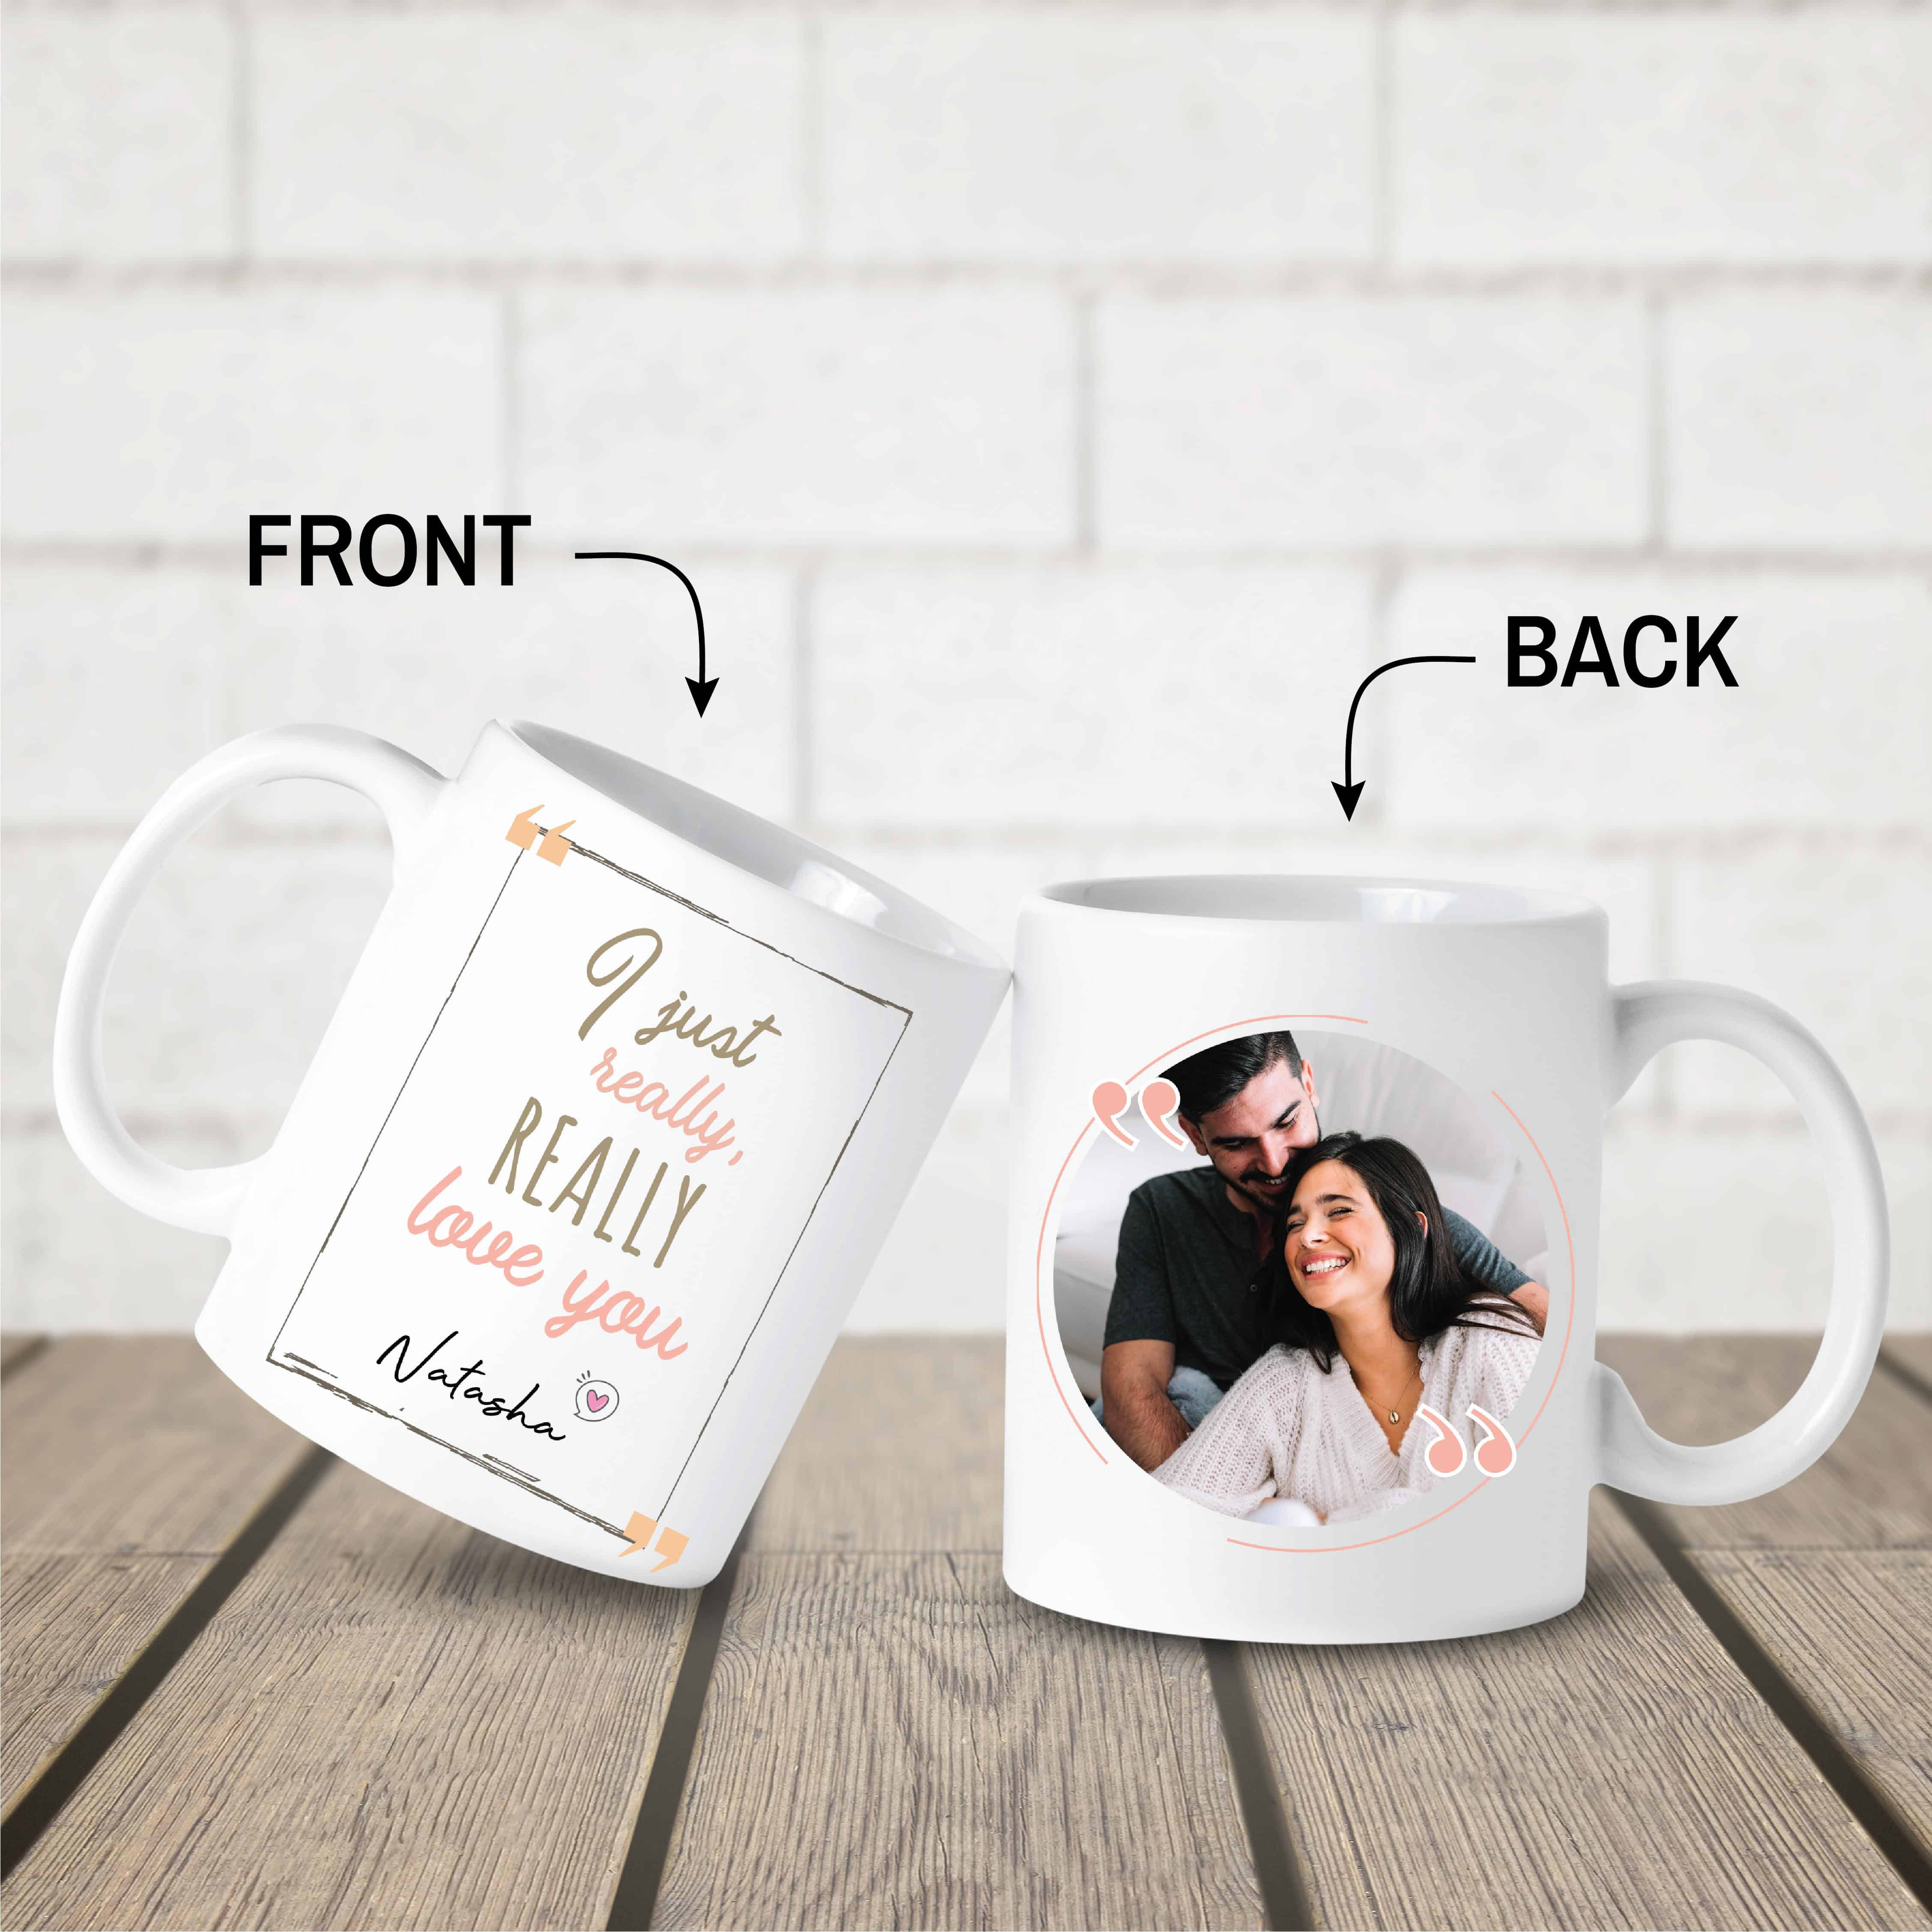 i just really really love you custom photo mug